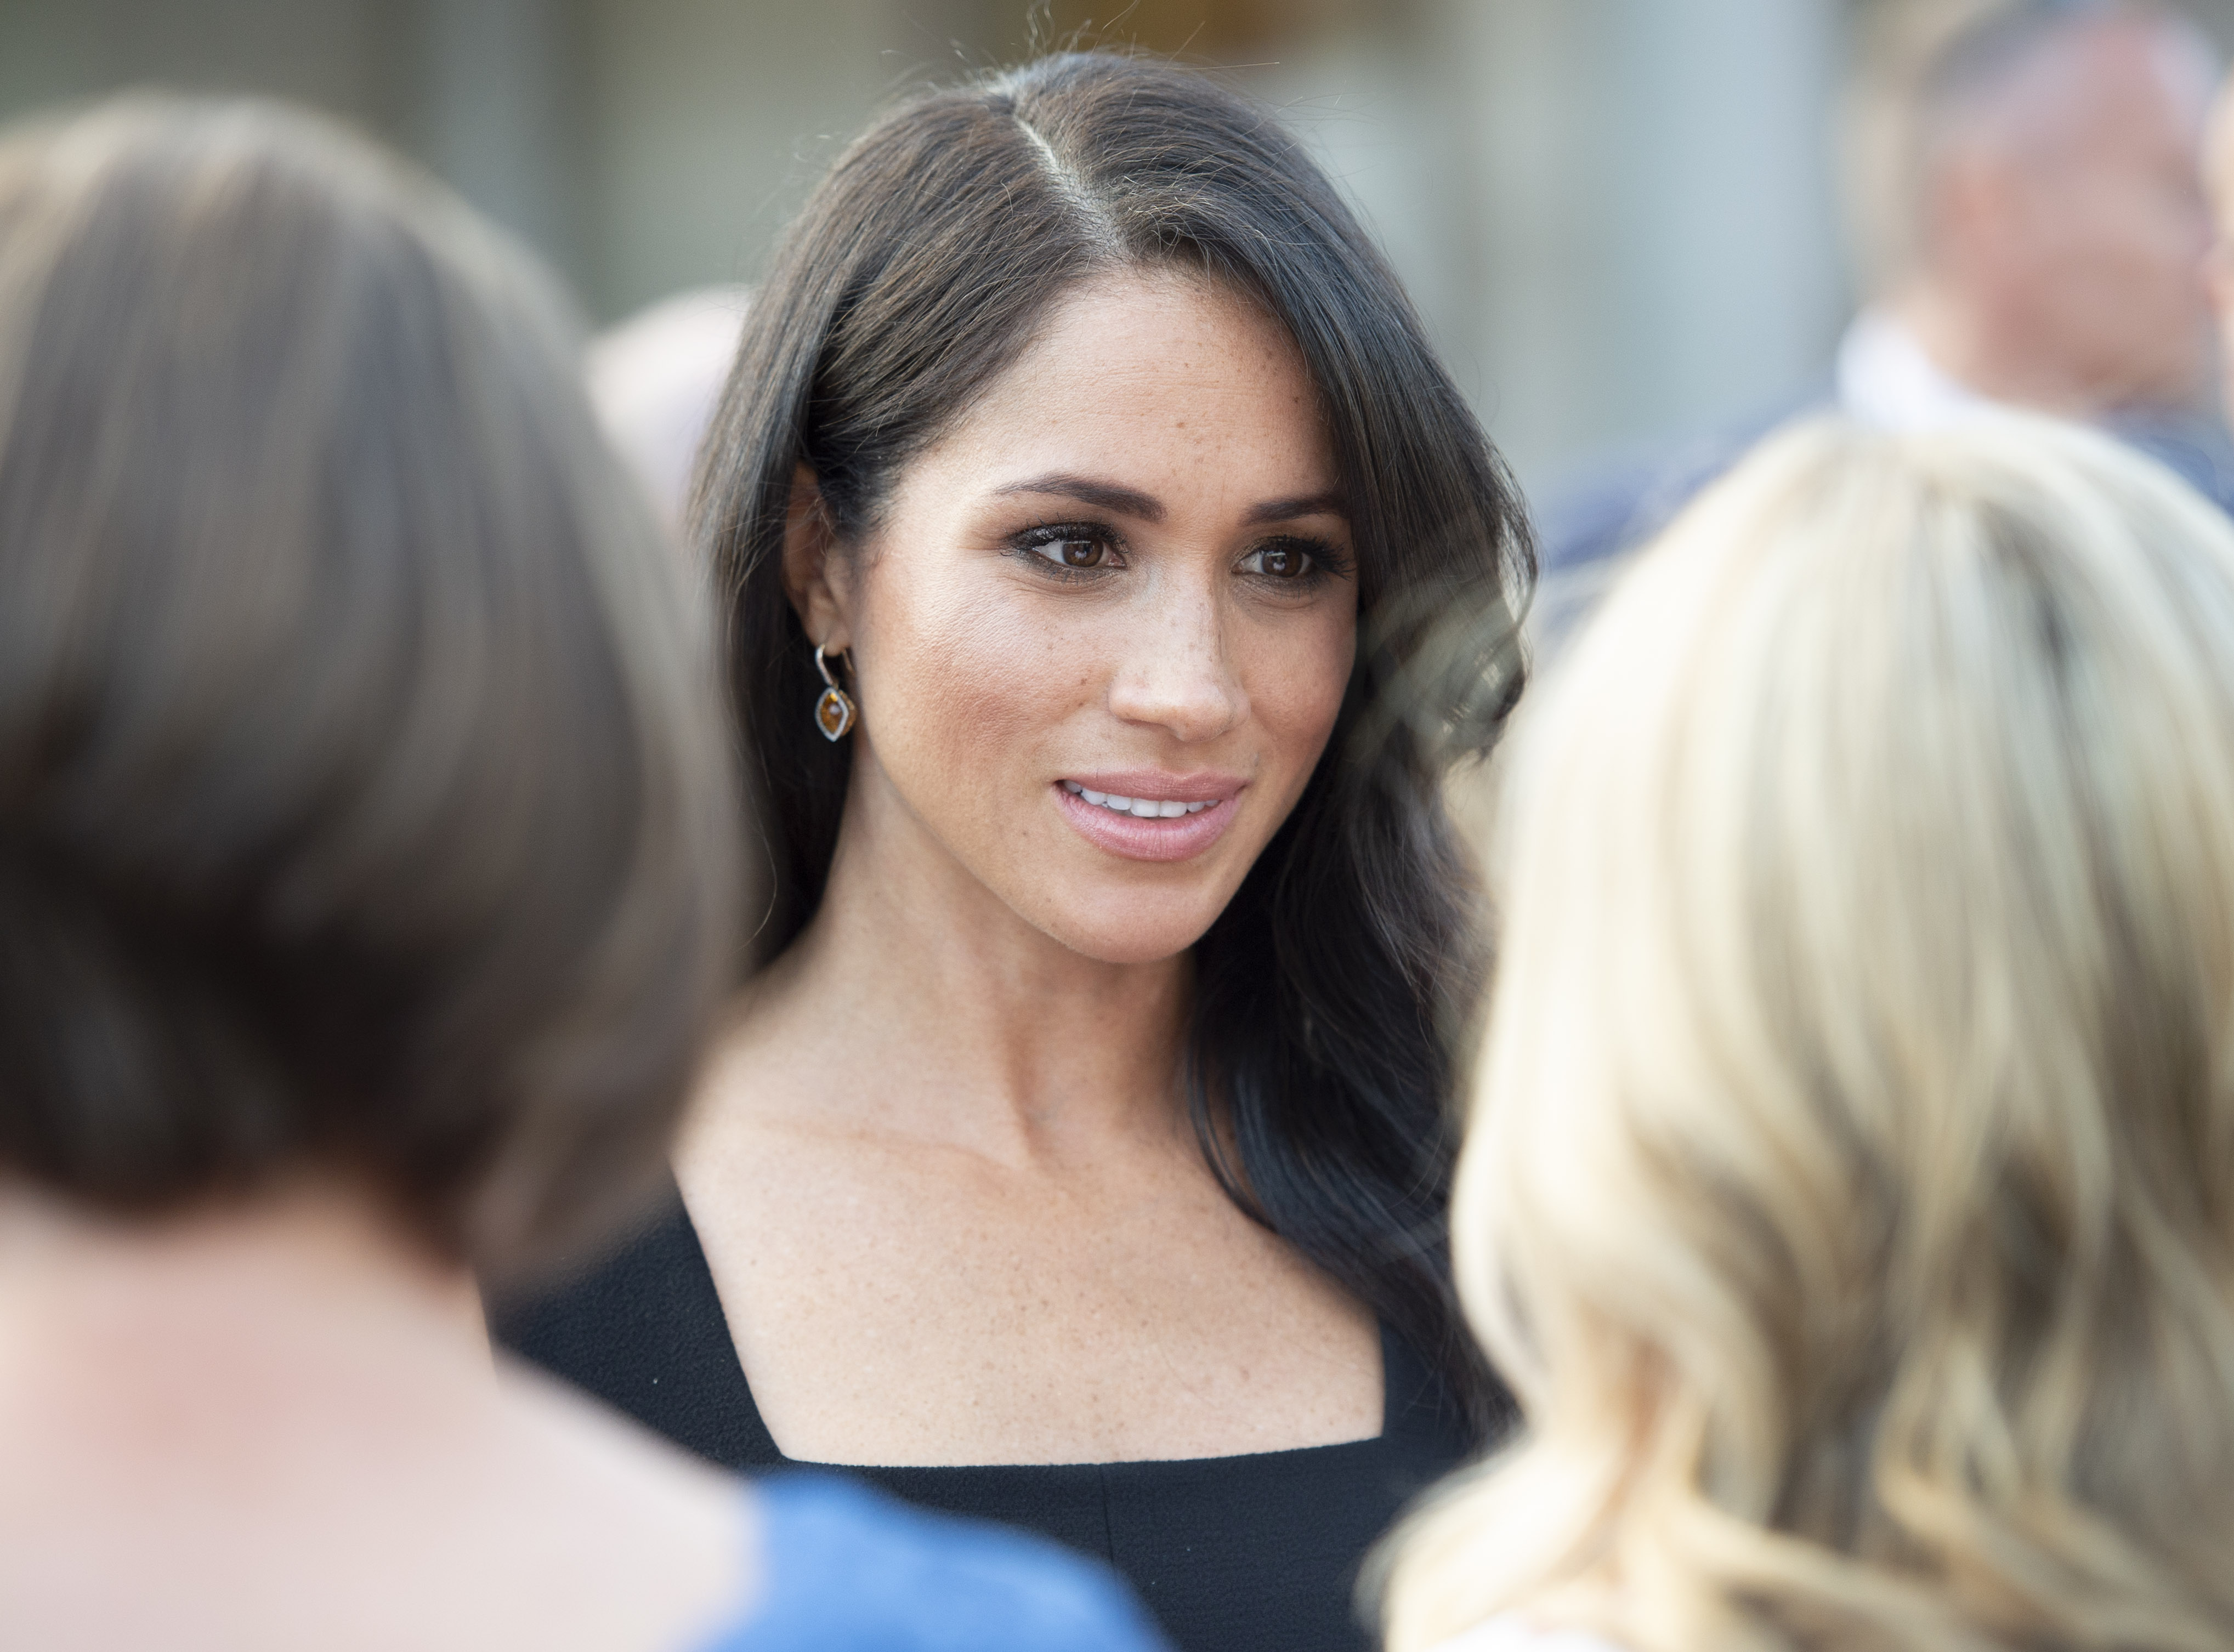 Meghan, Duchess of Sussex attends a reception at Glencairn, the residence of Robin Barnett, the British Ambassador to Ireland during day one of their visit to Ireland on July 10, 2018 in Dublin, Ireland.